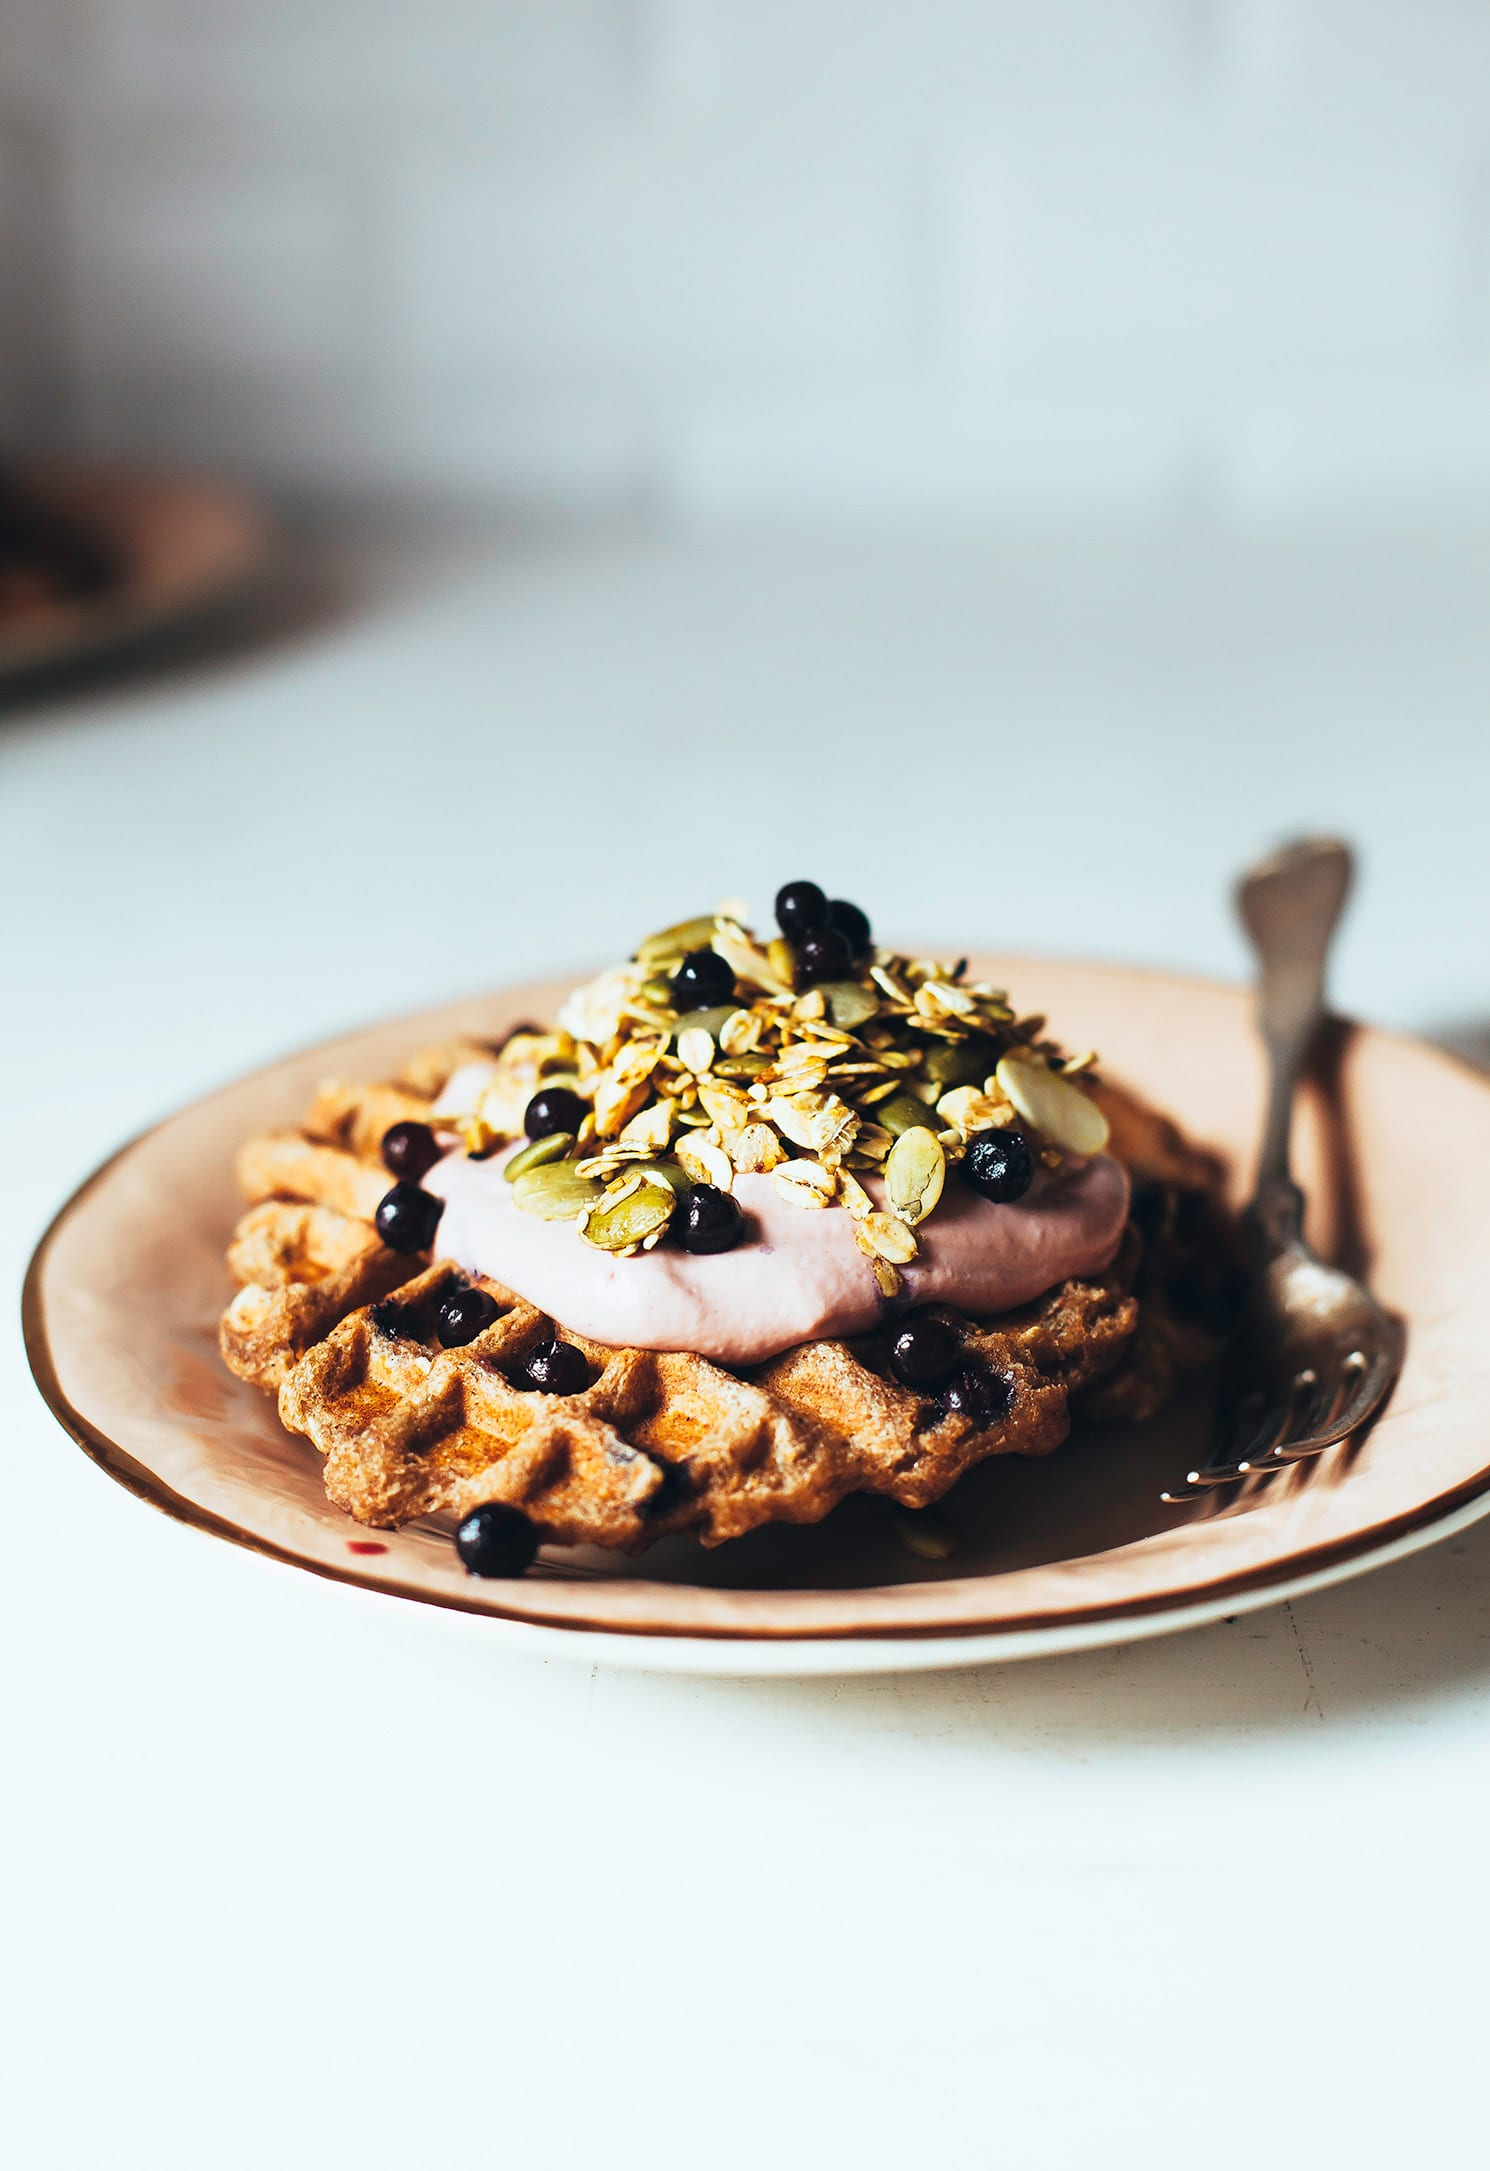 blueberry spelt waffles w/ rhubarb cashew cream & turmeric granola (vegan) - The First Mess